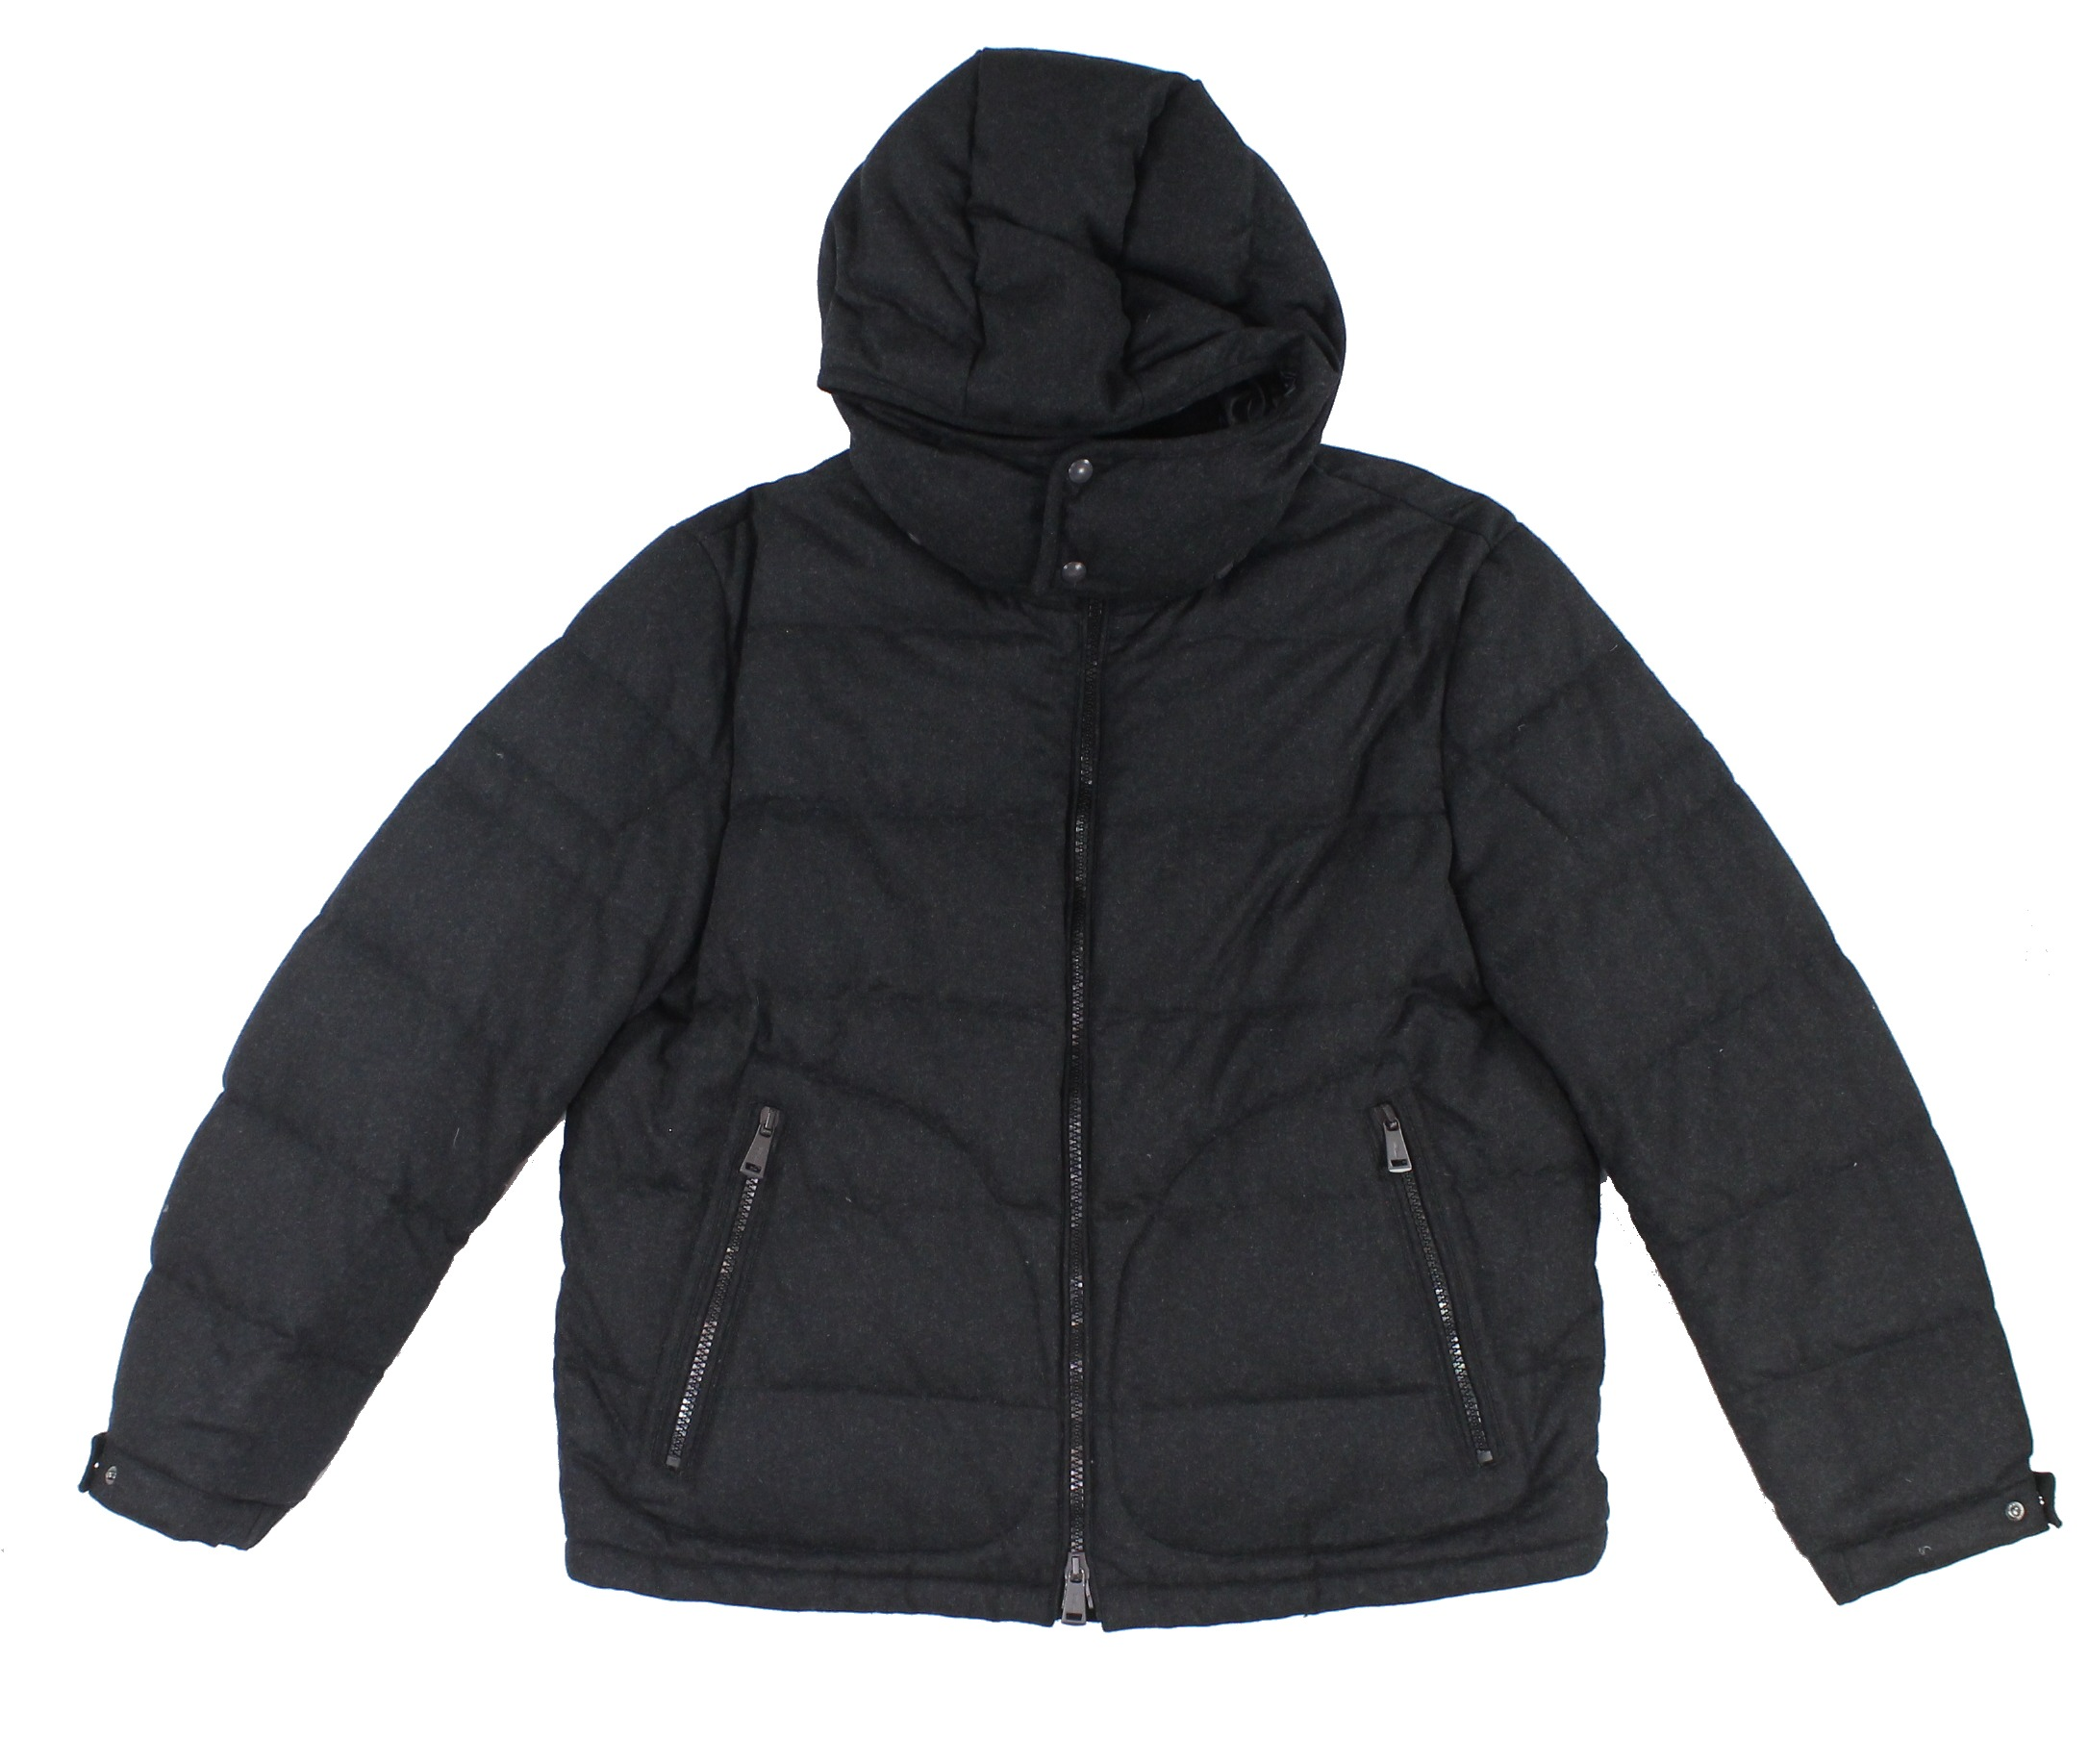 quilt polo dr e navy mens jacket lauren coat northfield blue normal sport quilted product ralph